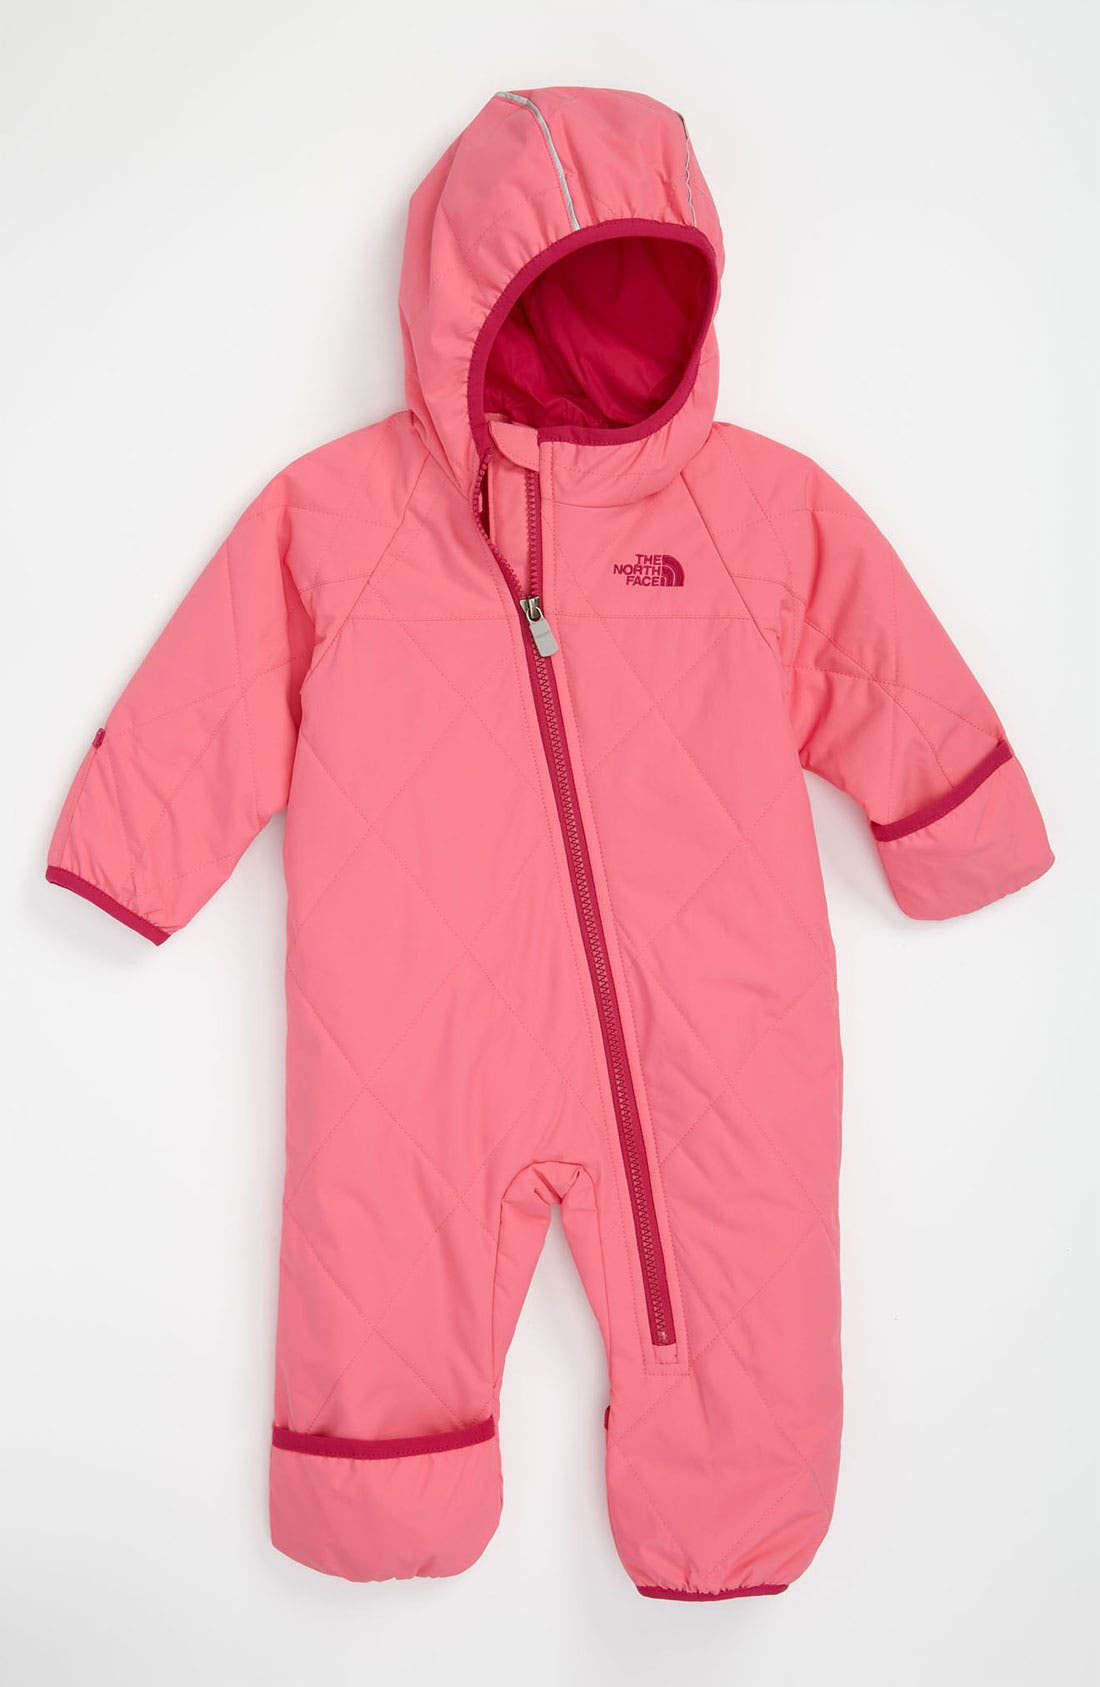 Main Image - The North Face 'Toasty Toes' Insulated Bunting (Infant)